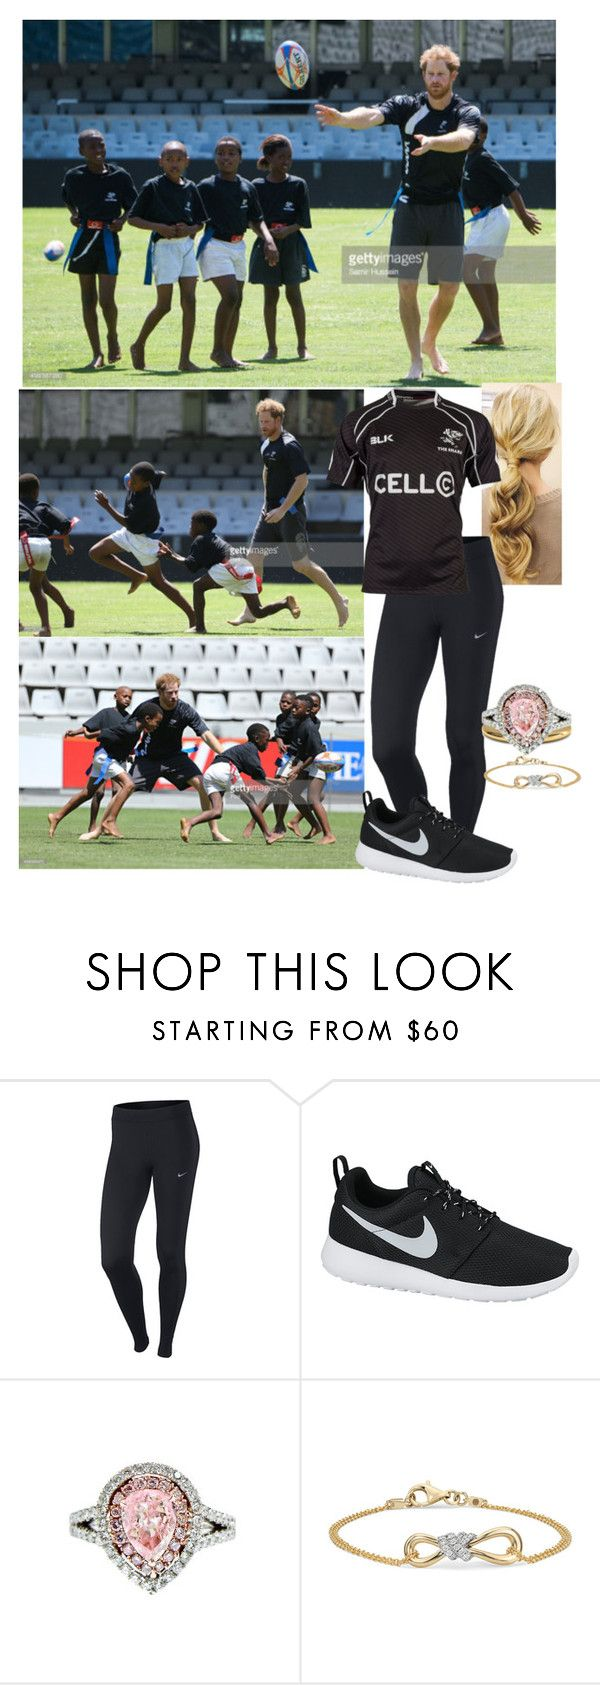 """""""Tour of South Africa(day 2): Visiting the King's Park Stadium and playing a game of tag rugby with the children"""" by duchess-rebecca ❤ liked on Polyvore featuring NIKE and Diana M. Jewels"""